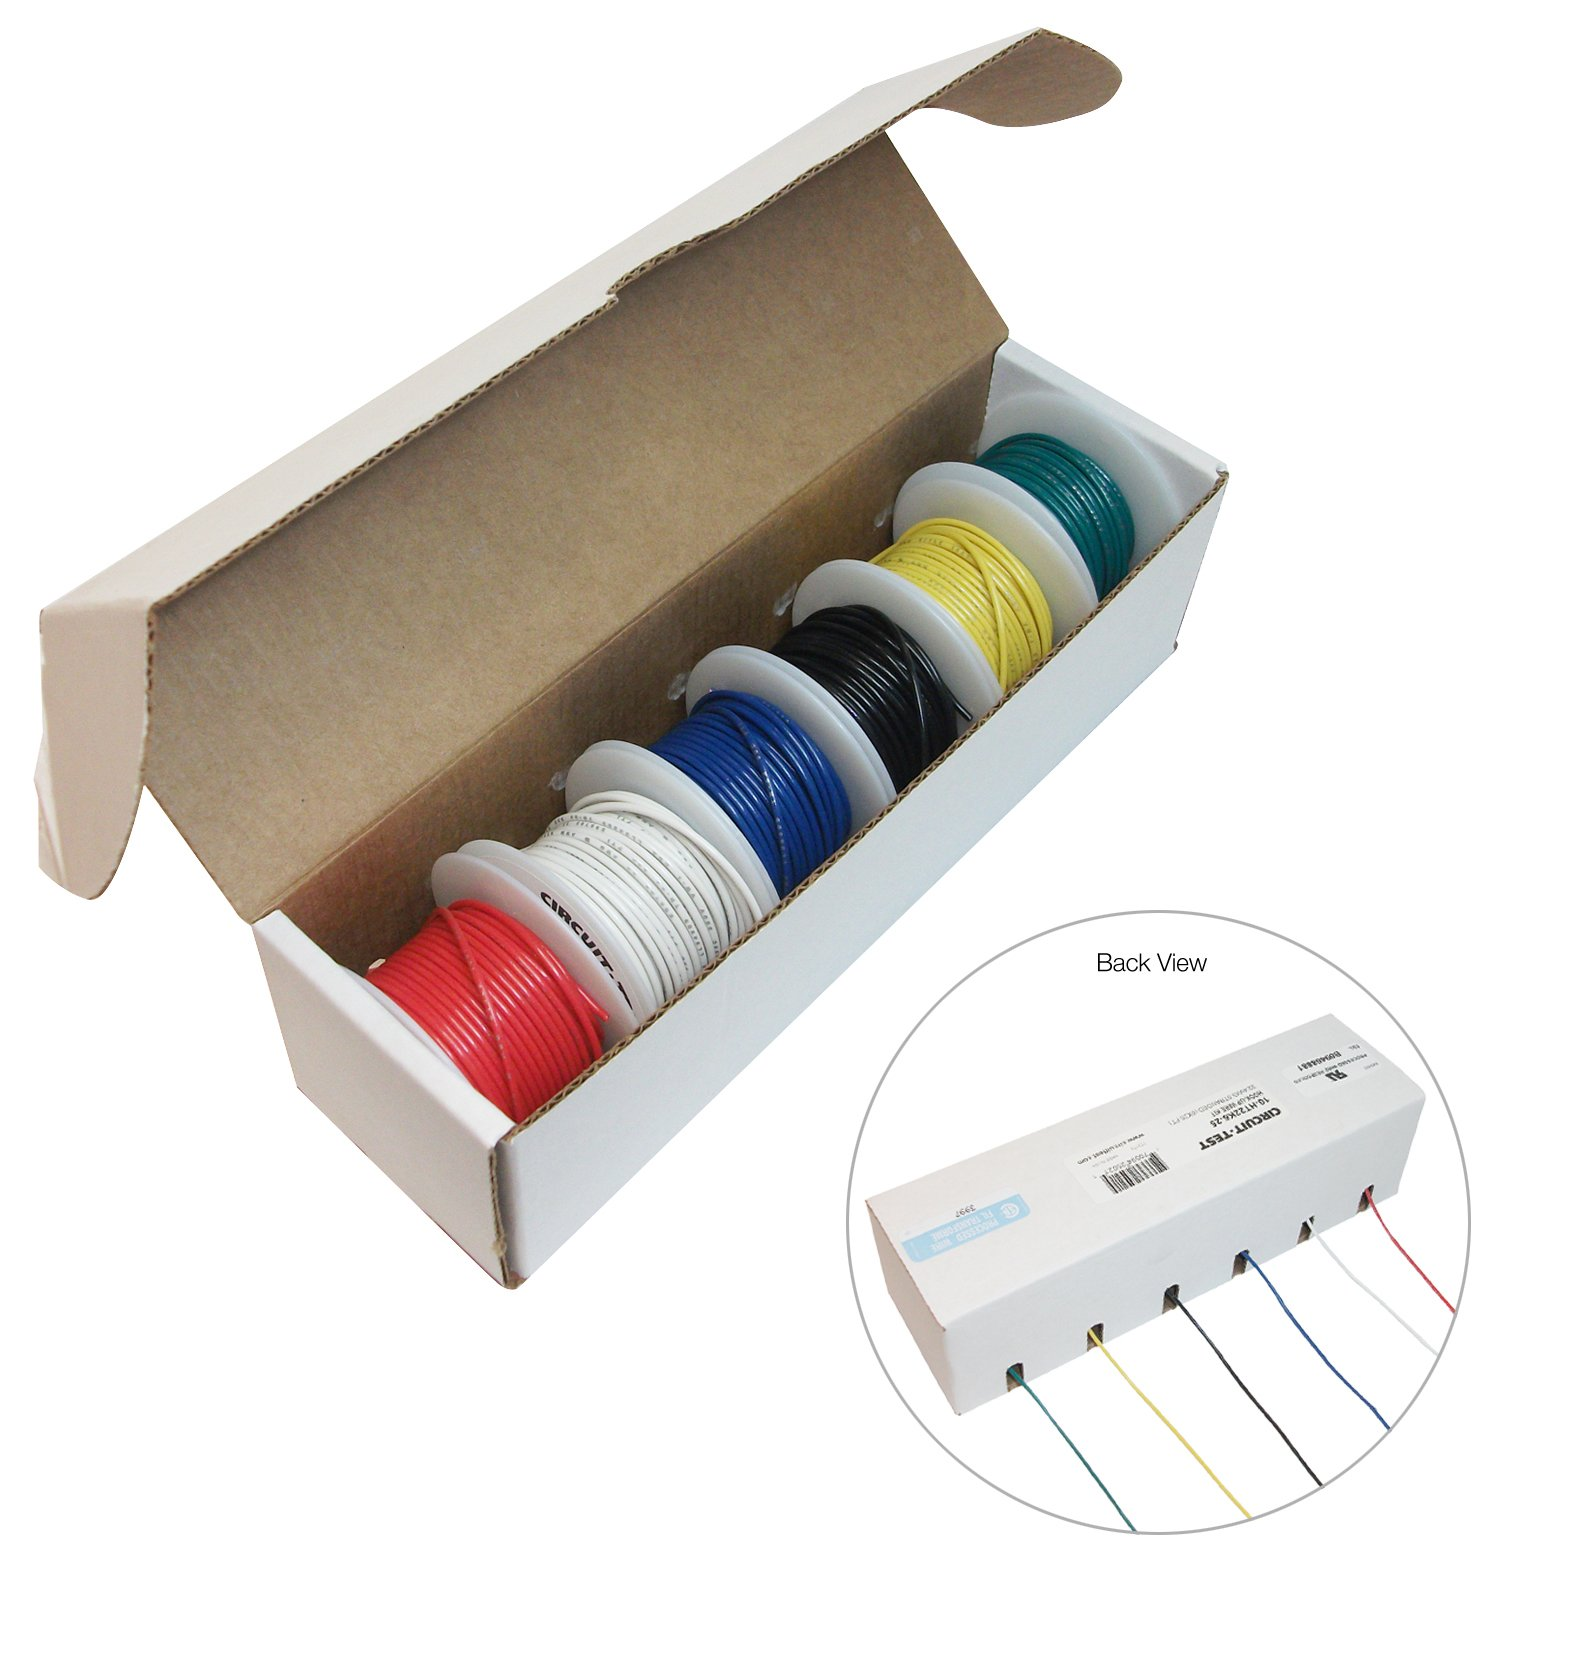 CIRCUIT-TEST 22AWG Stranded Hook Up Wire Kit - 6 x 25 Foot Rolls - Assorted Colors (10-HT22K6-25) by Circuit-Test